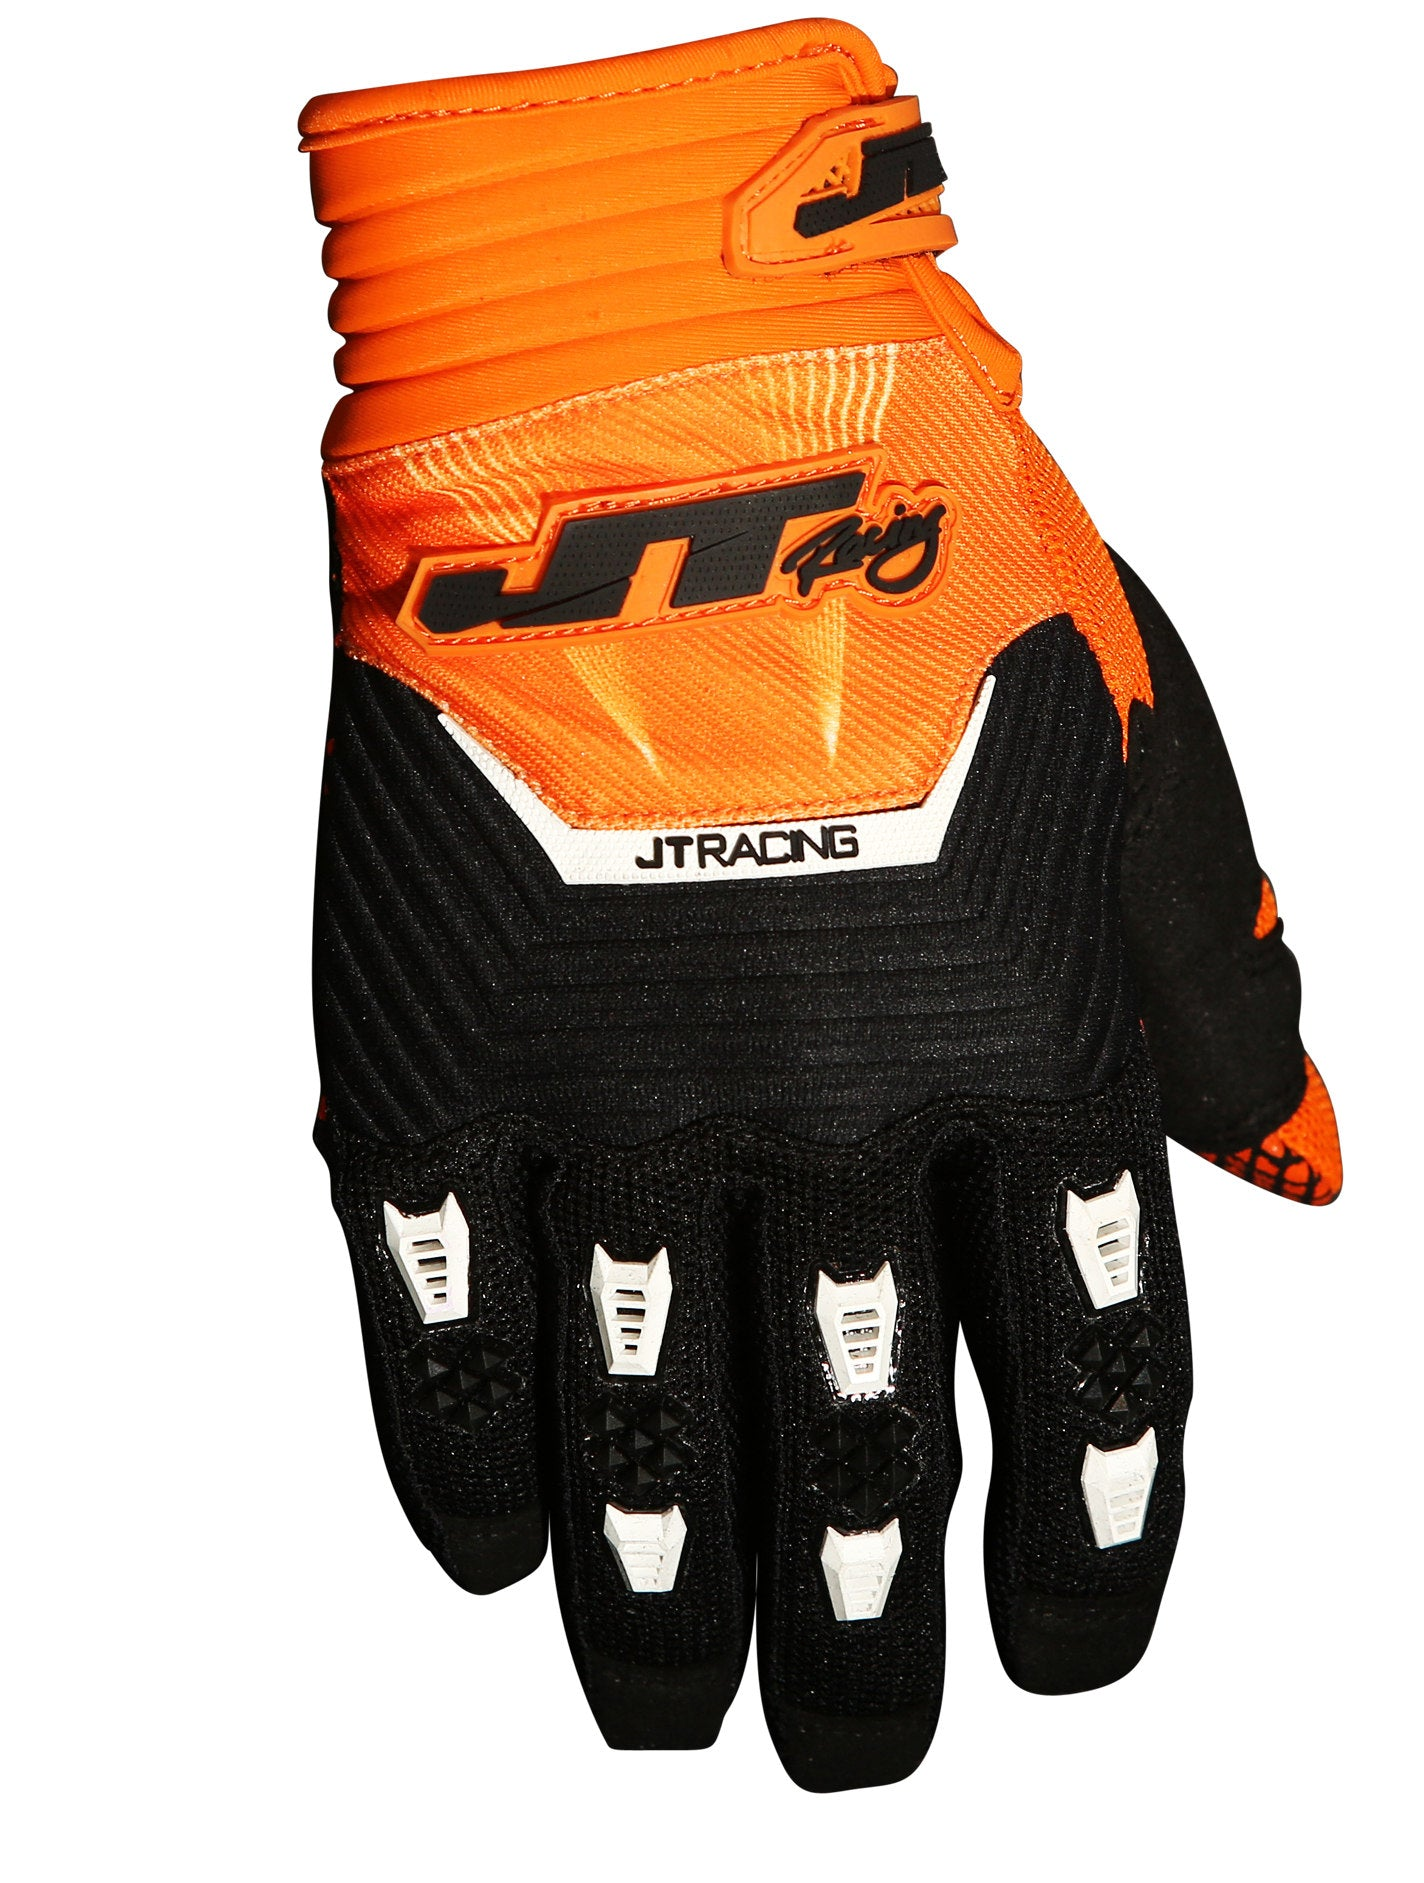 JT Racing Throttle Gloves, Black/Orange